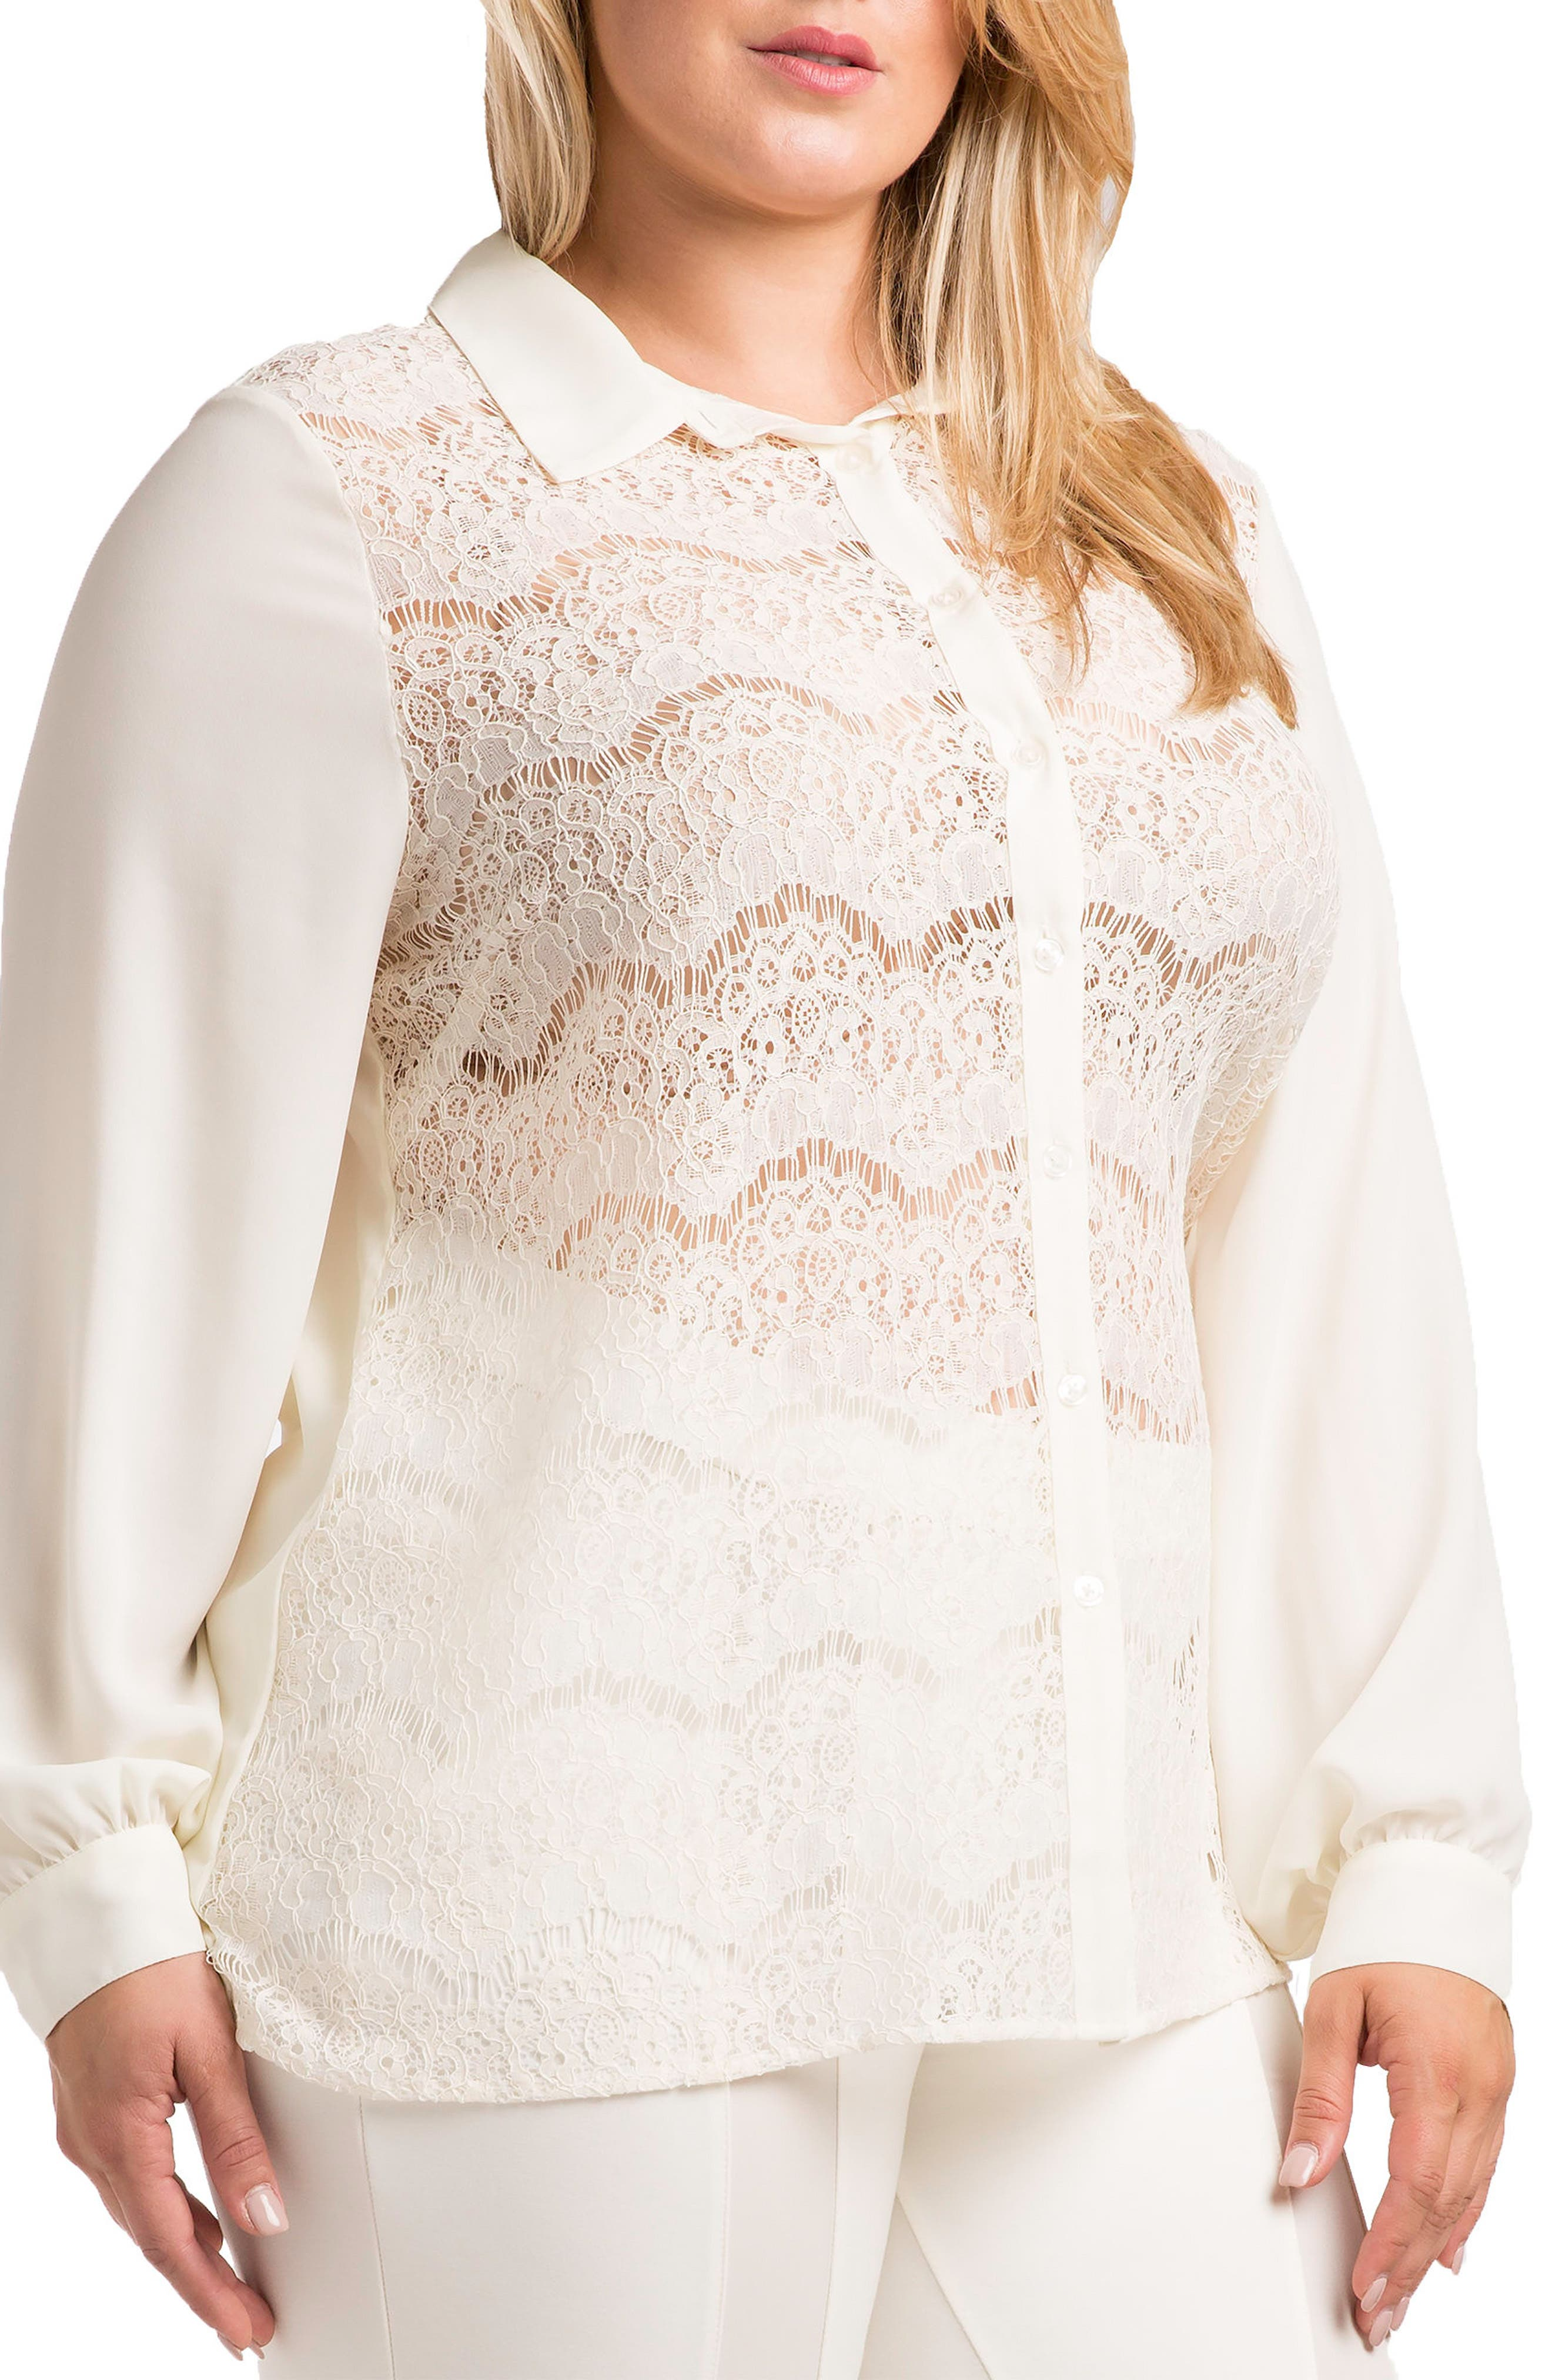 STANDARDS & PRACTICES, Coco Lace Front Shirt, Main thumbnail 1, color, WHITE